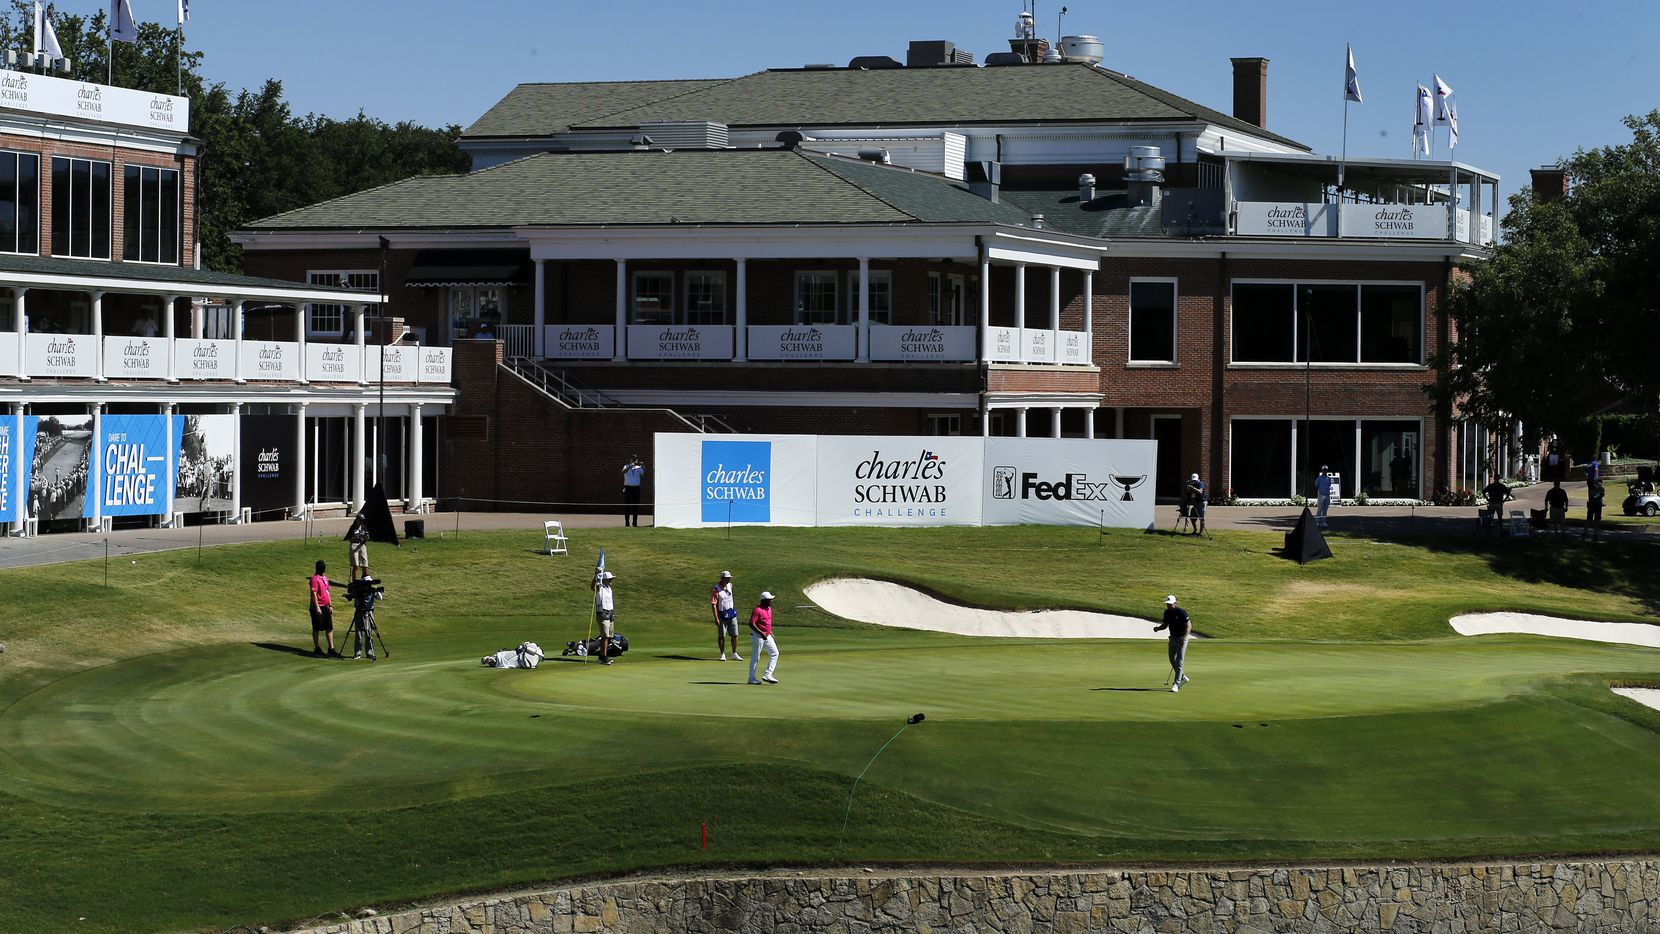 The Charles Schwab Challenge at Colonial Country Club in Fort Worth was the first PGA tour event held without fans since the COVID-19 pandemic began.